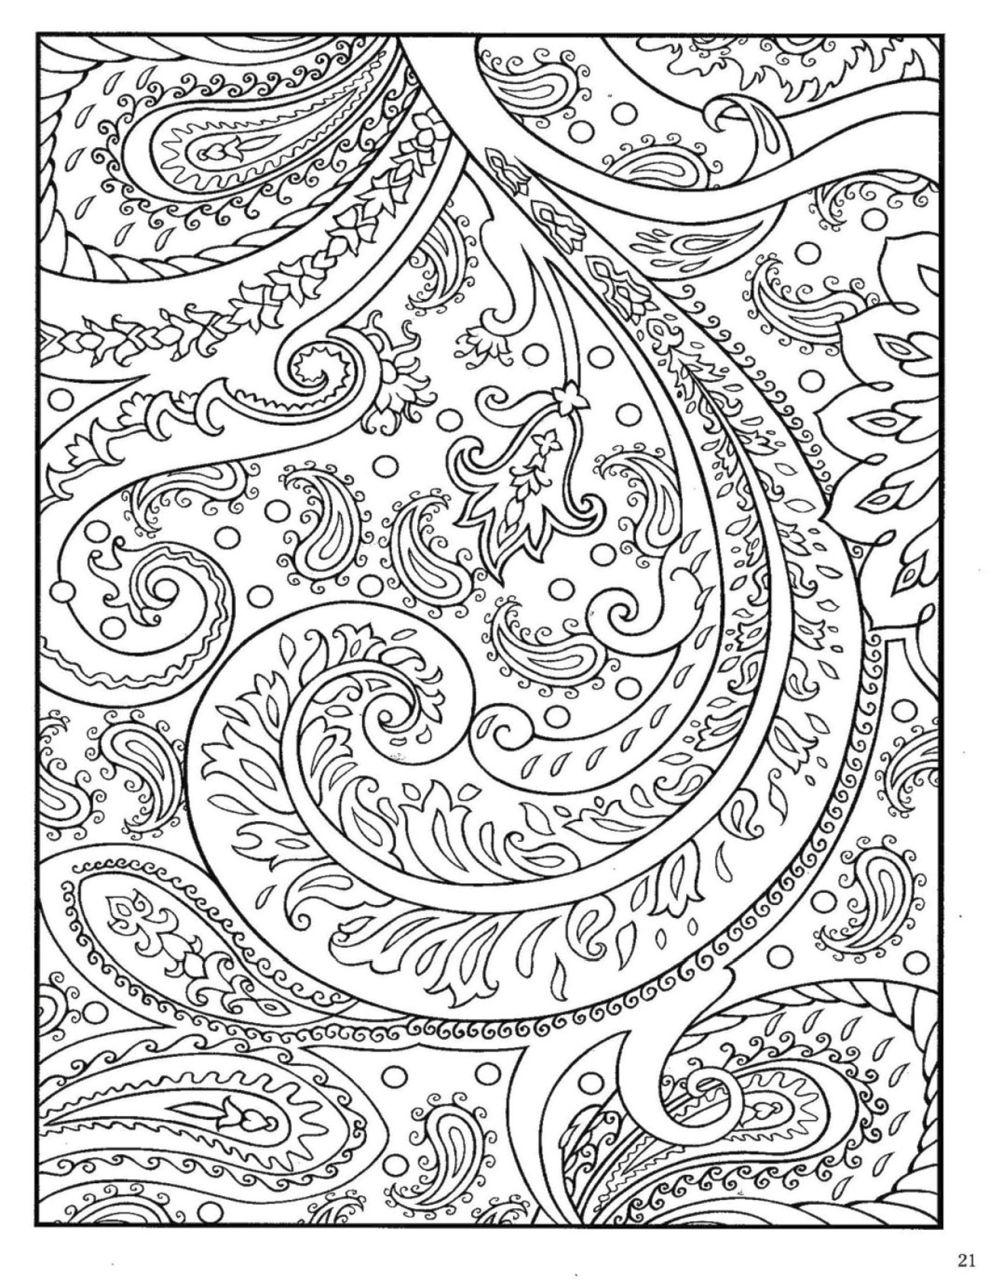 abstract space coloring pages - photo#11